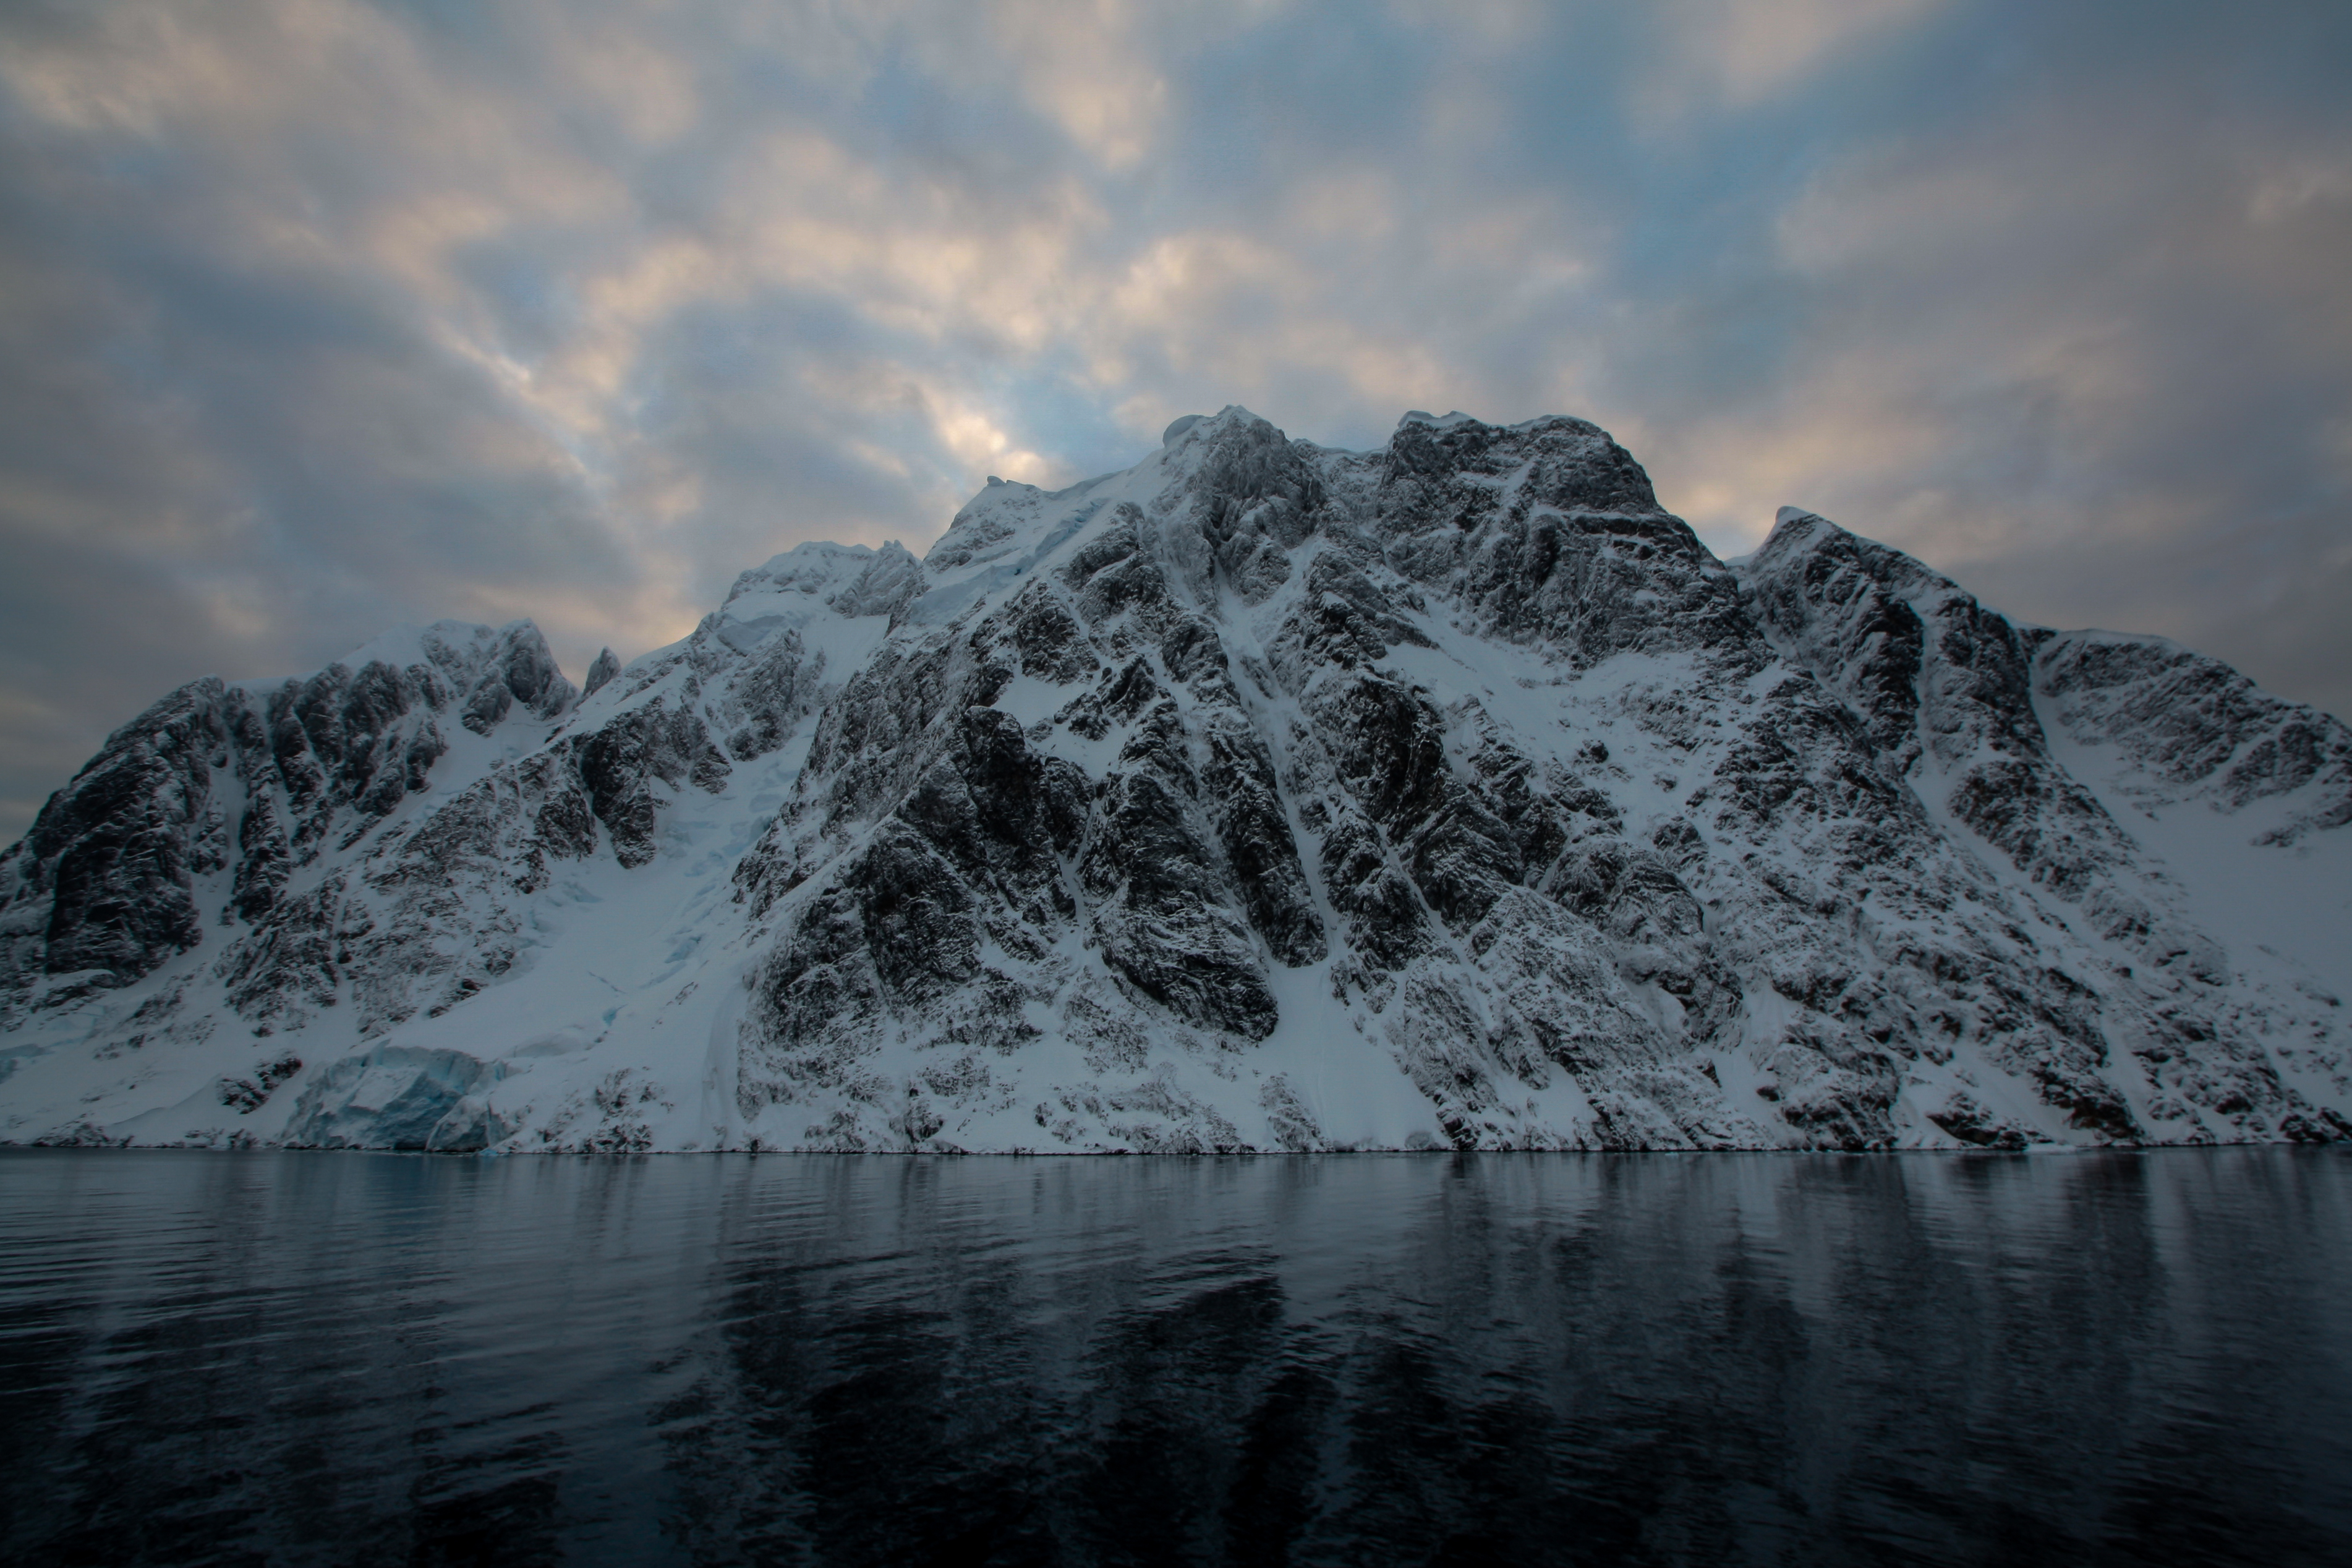 the gallery for gt antarctic mountains